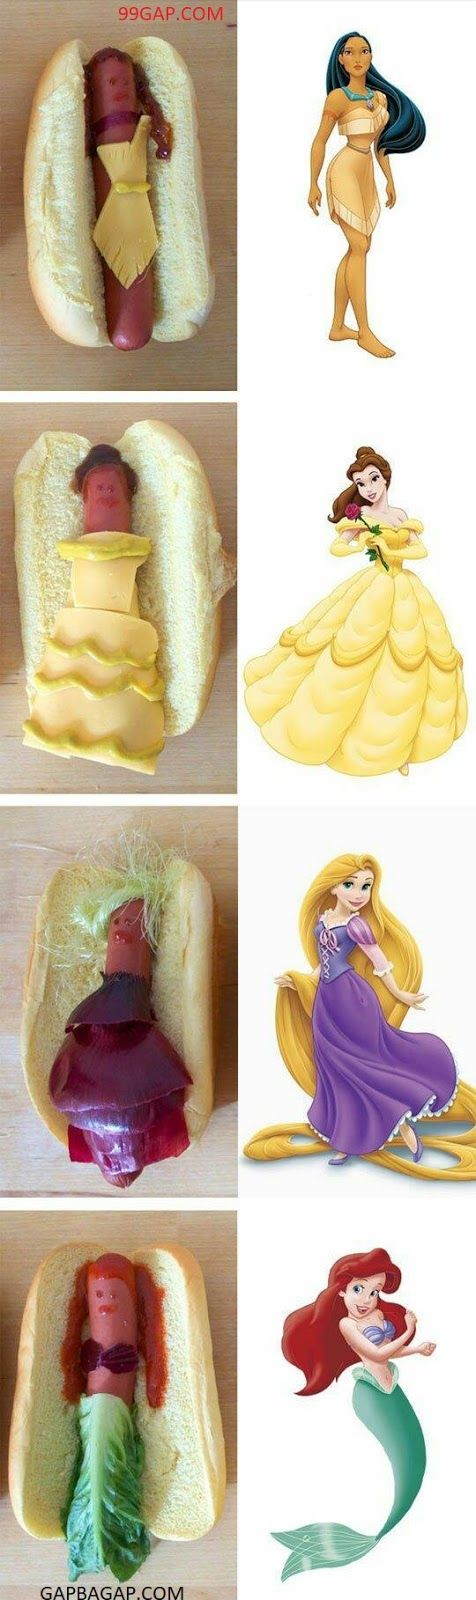 #FunnyPictures Of #Disney #Princess vs. Hot Dogs